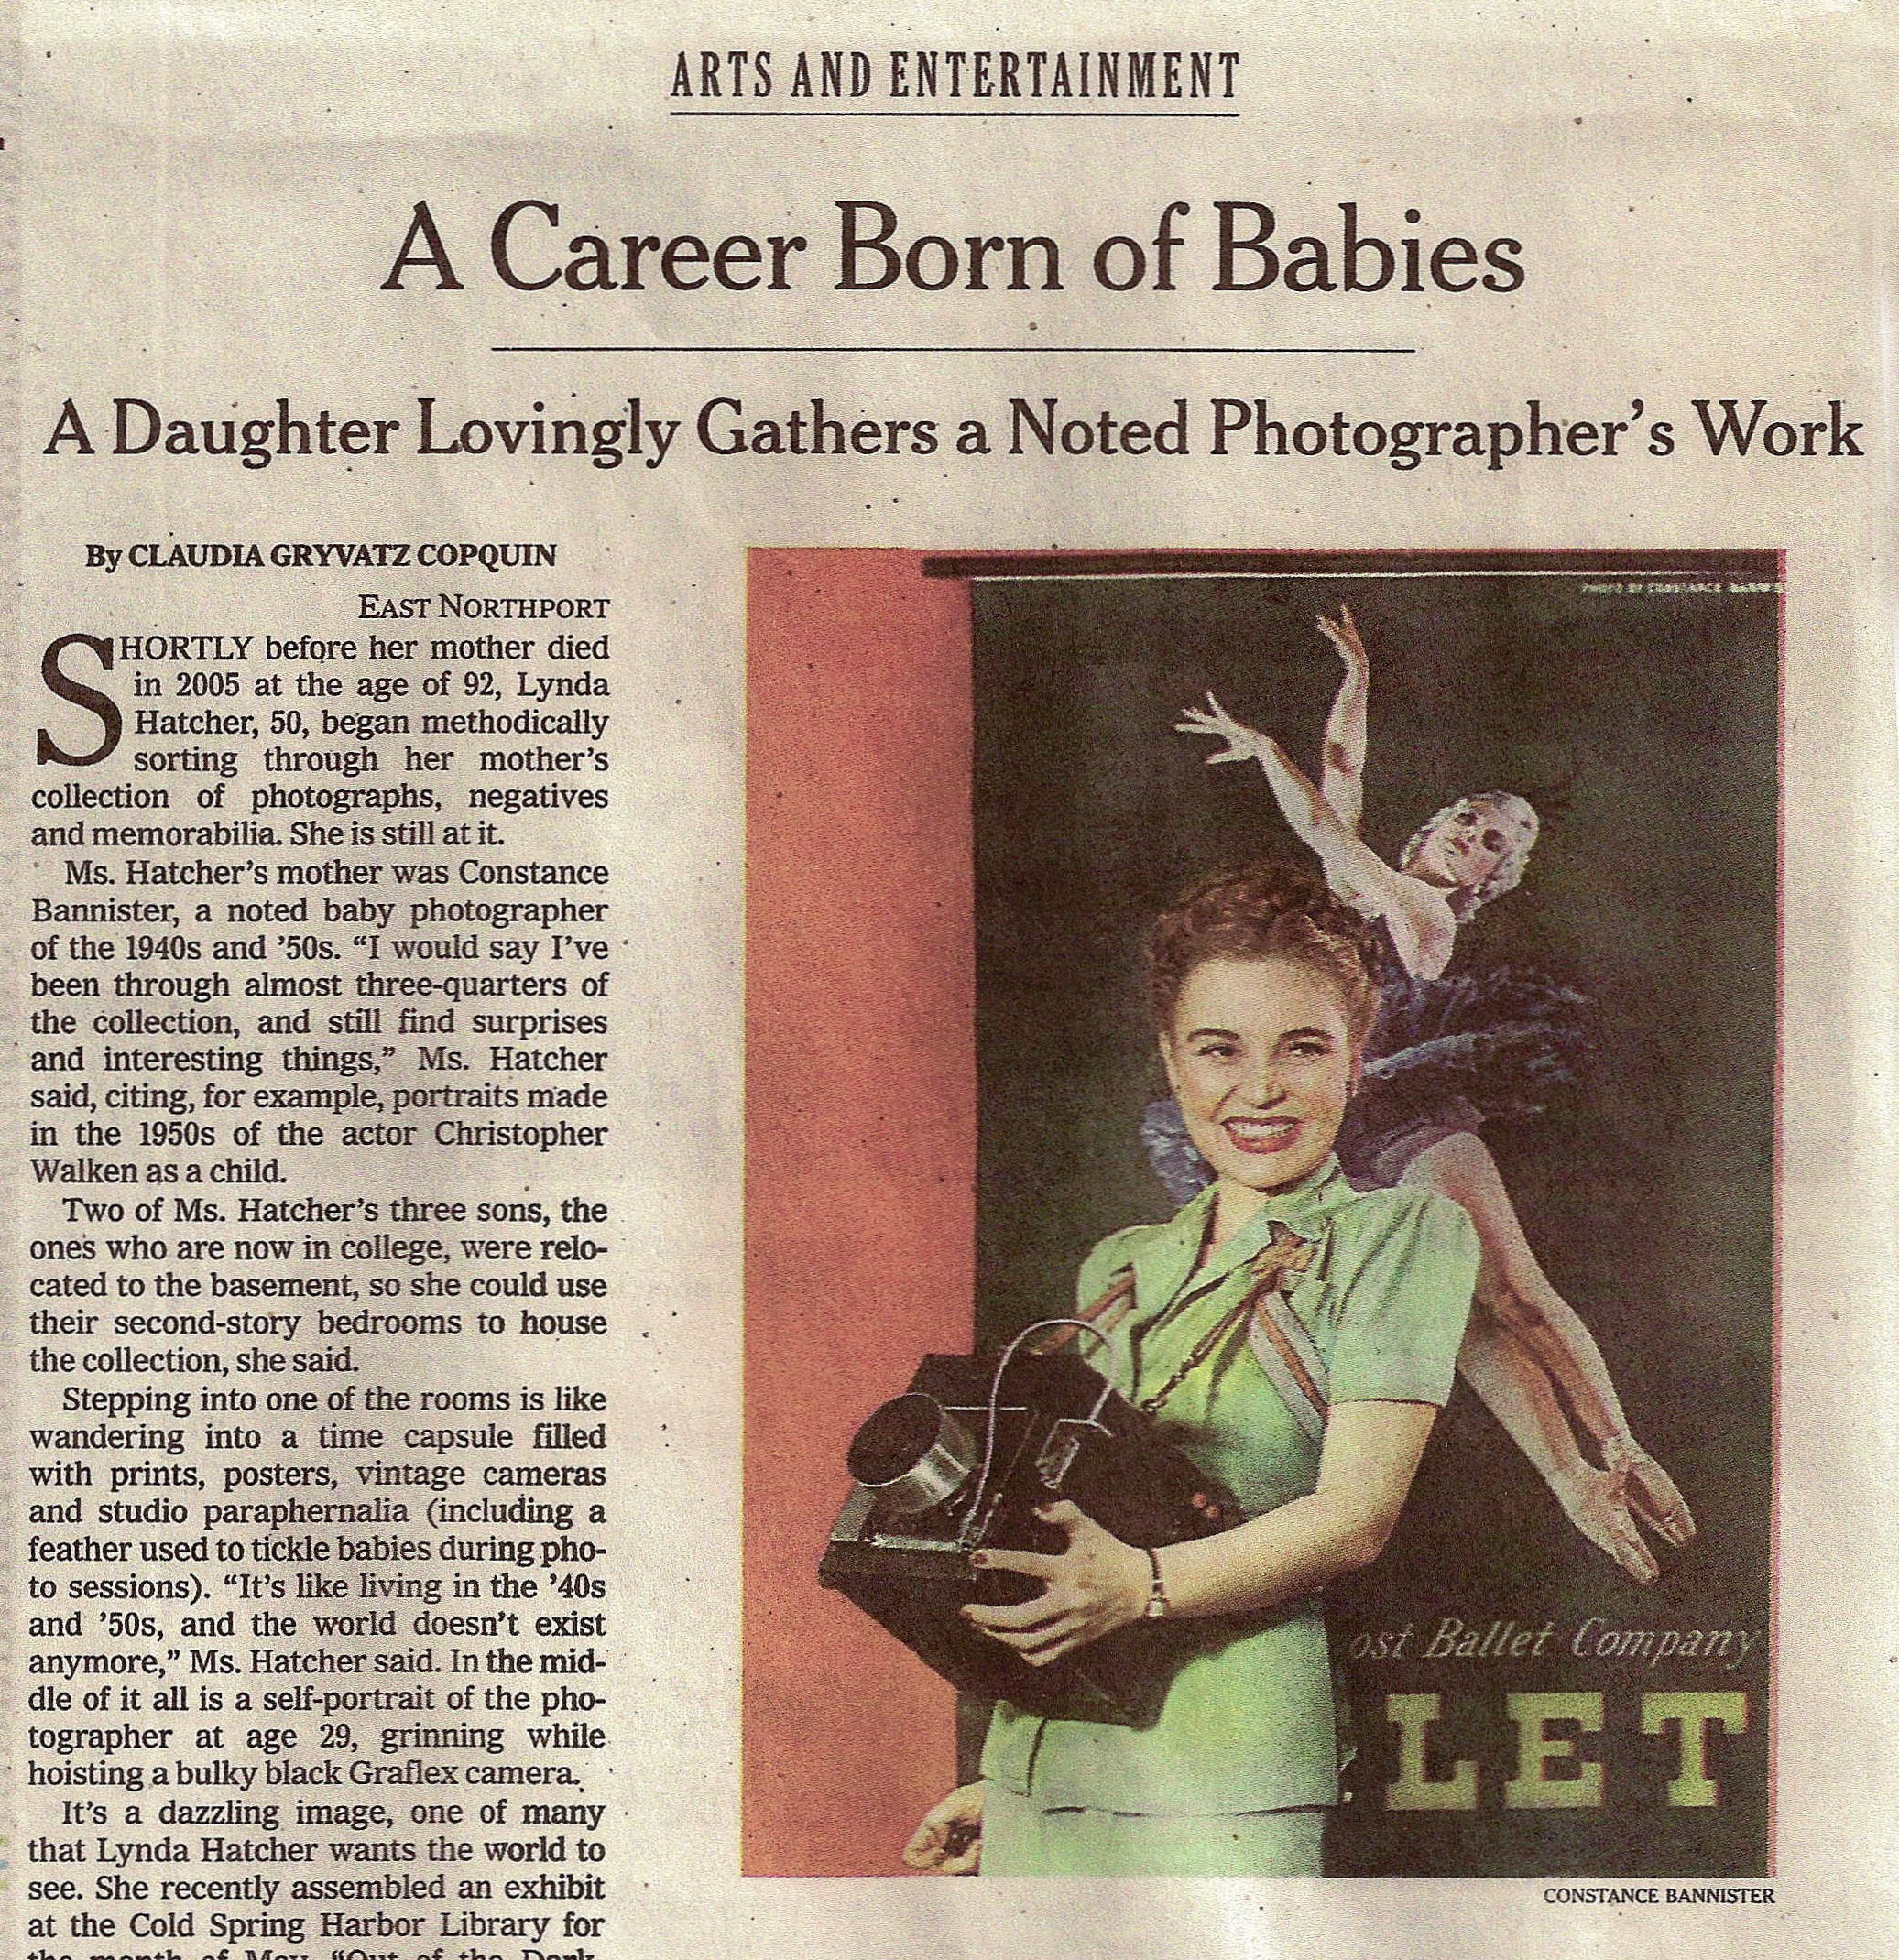 Career Born of Babies